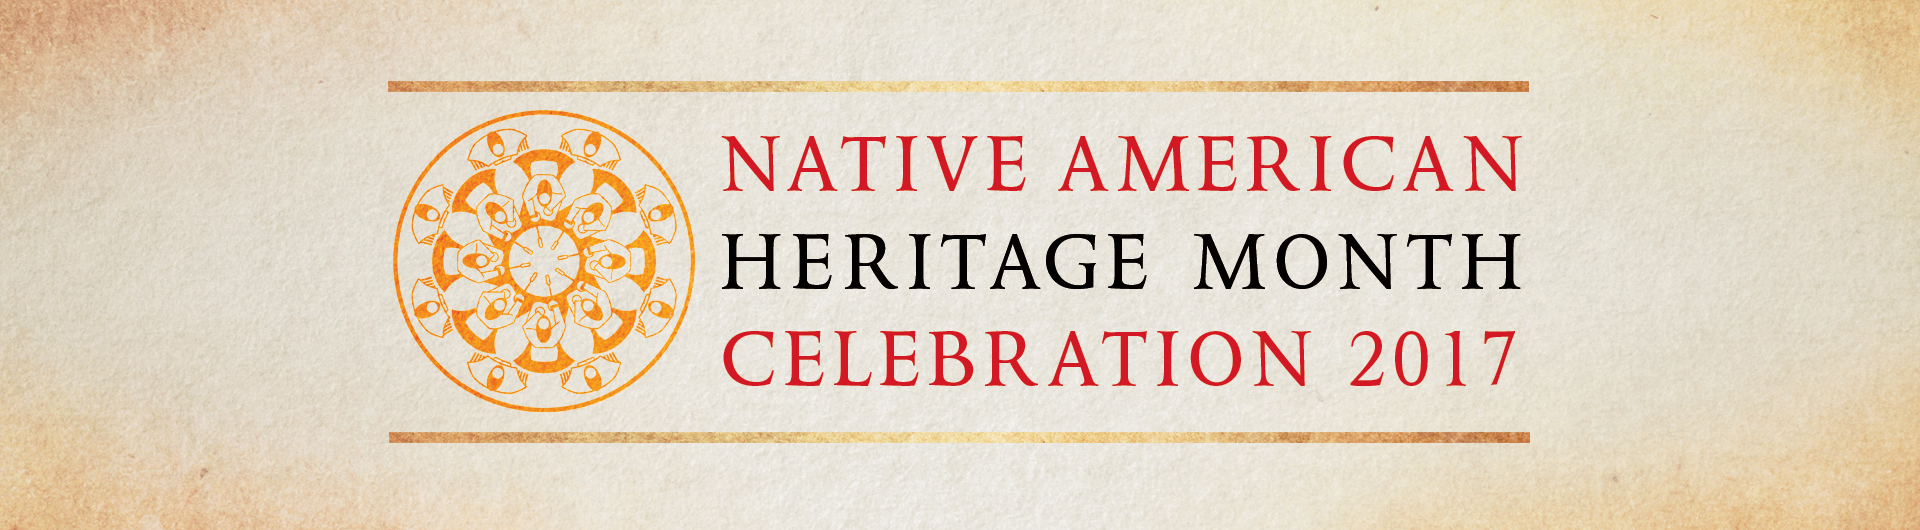 Native American Heritage Month Celebration 2017